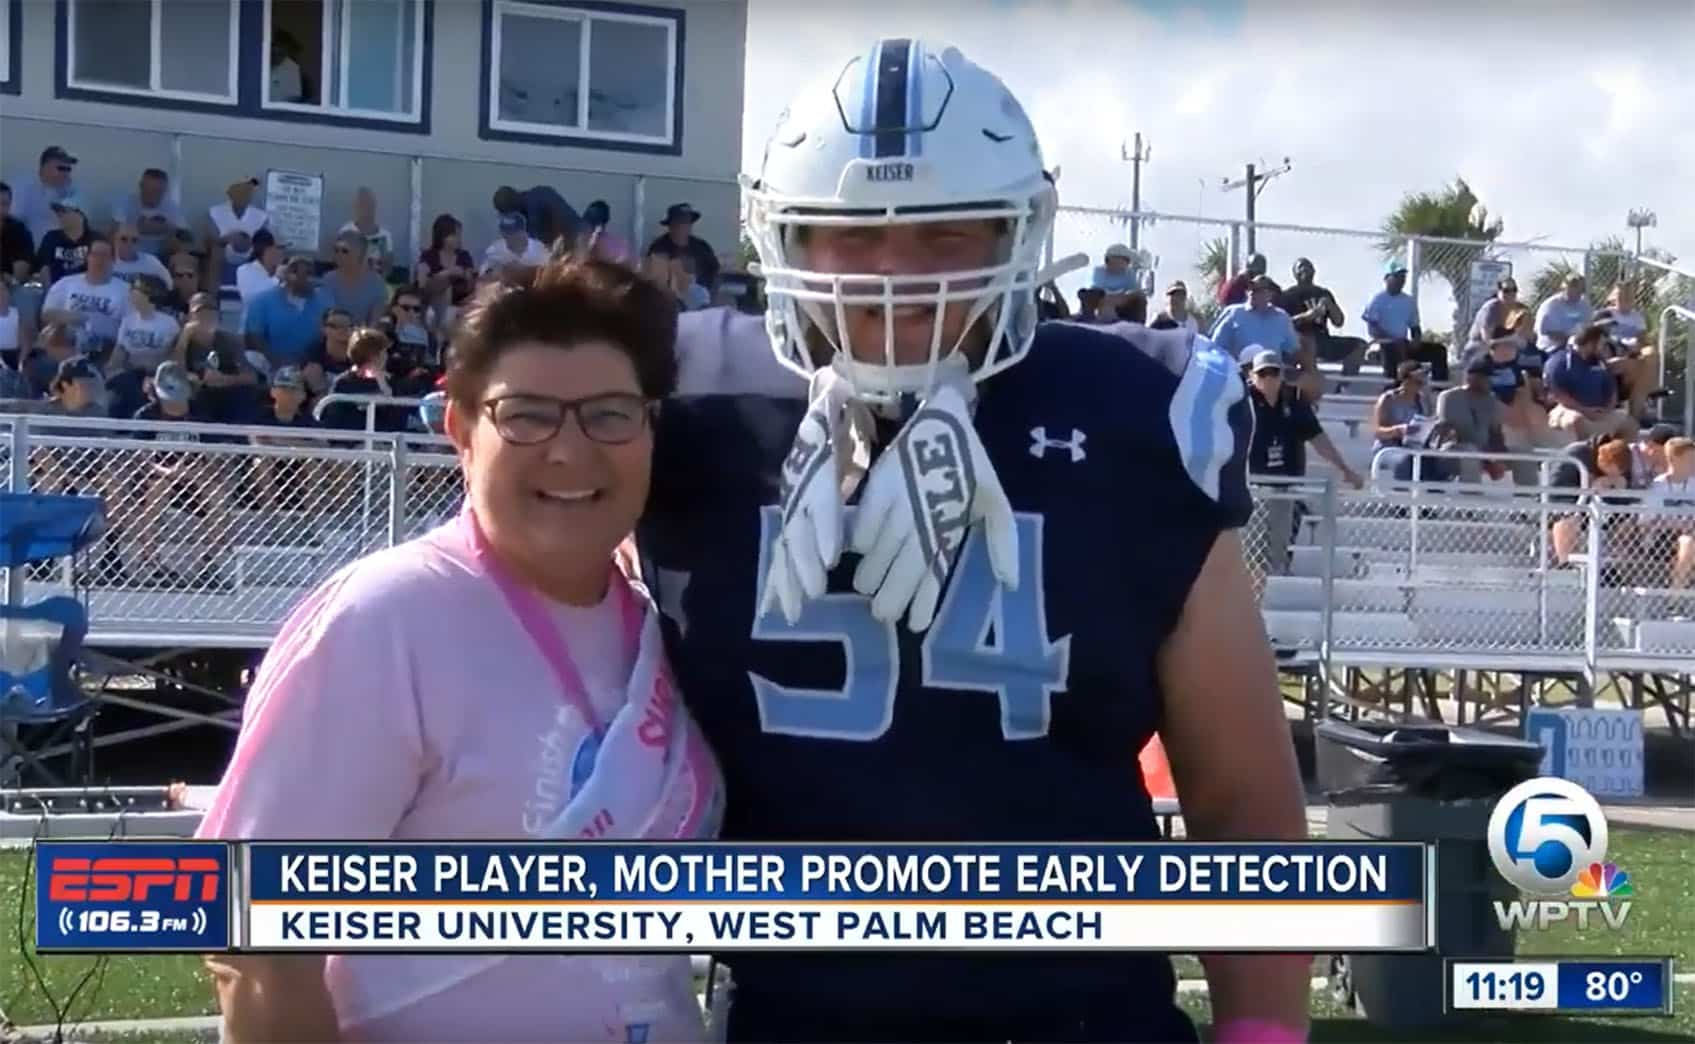 Keiser University Football Player Honors Mother on the Field as the Two Promote Early Breast Cancer Detection